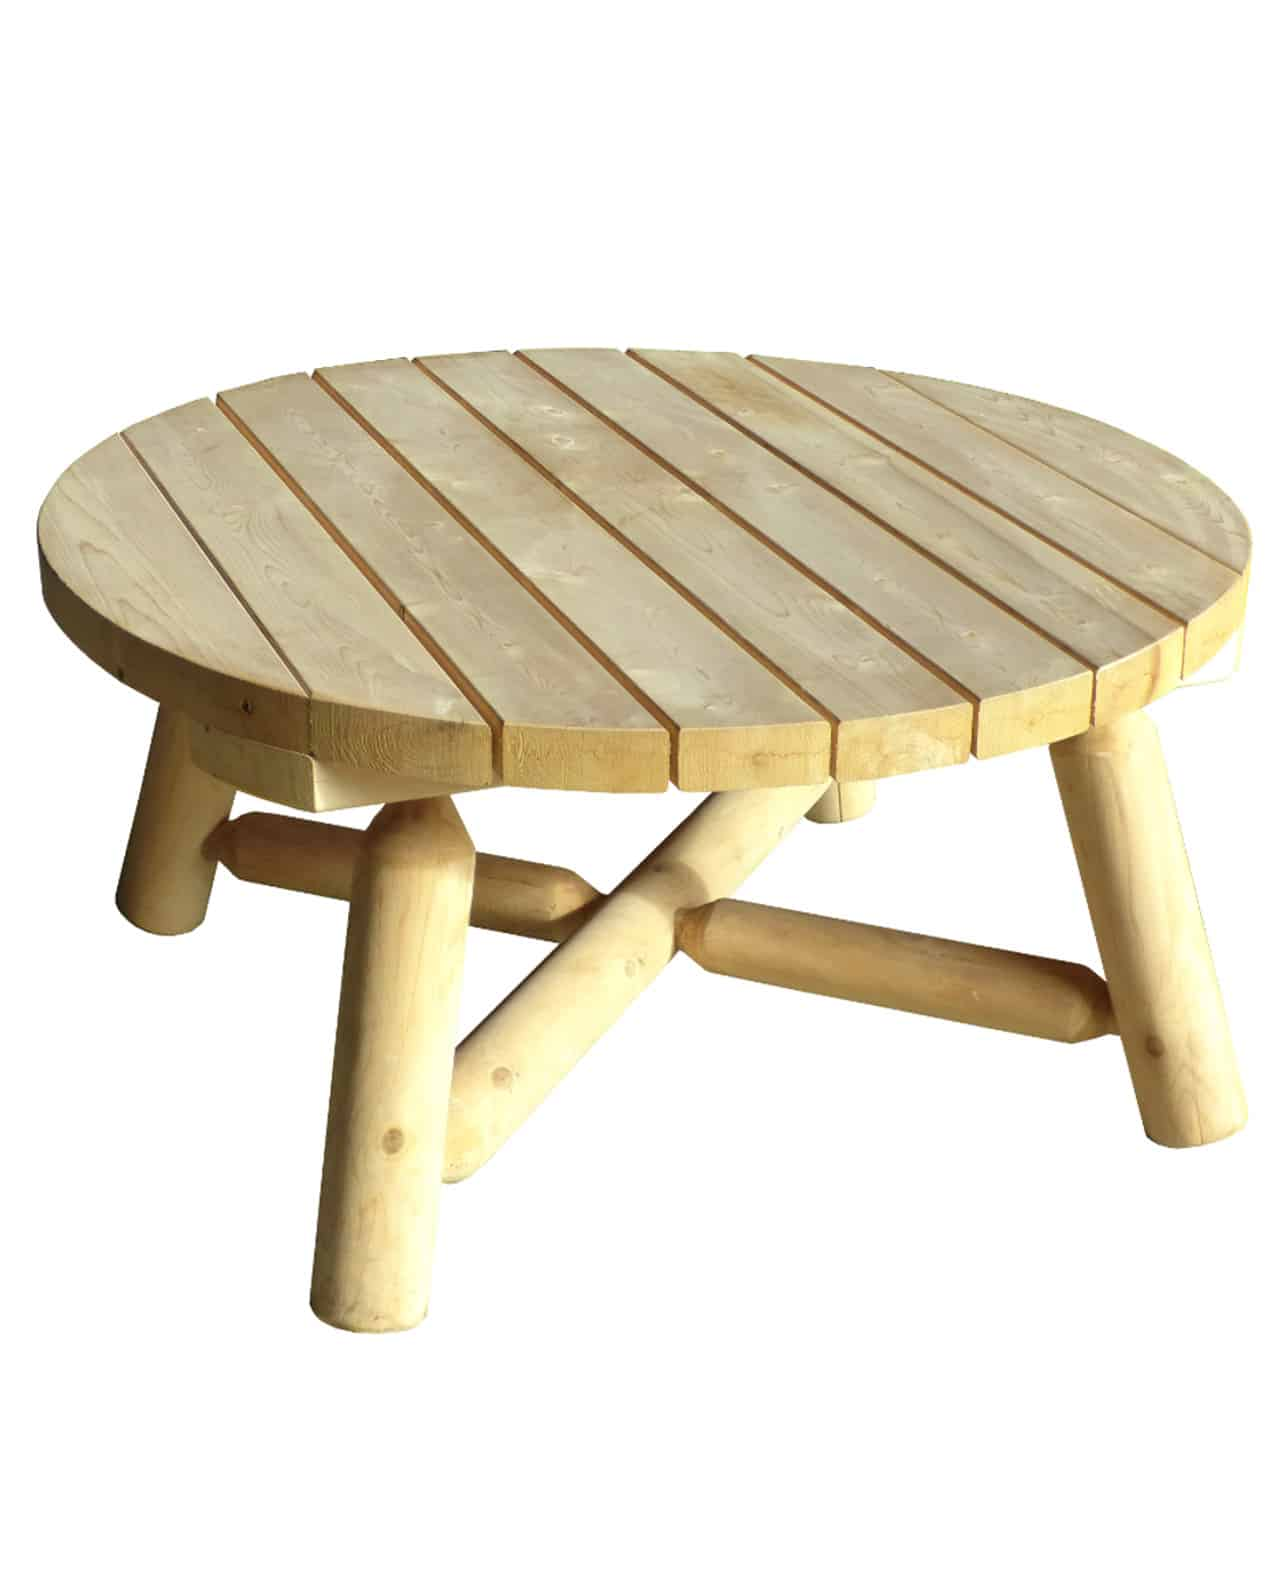 Table En Bois. emejing table de jardin bois demontable images ...